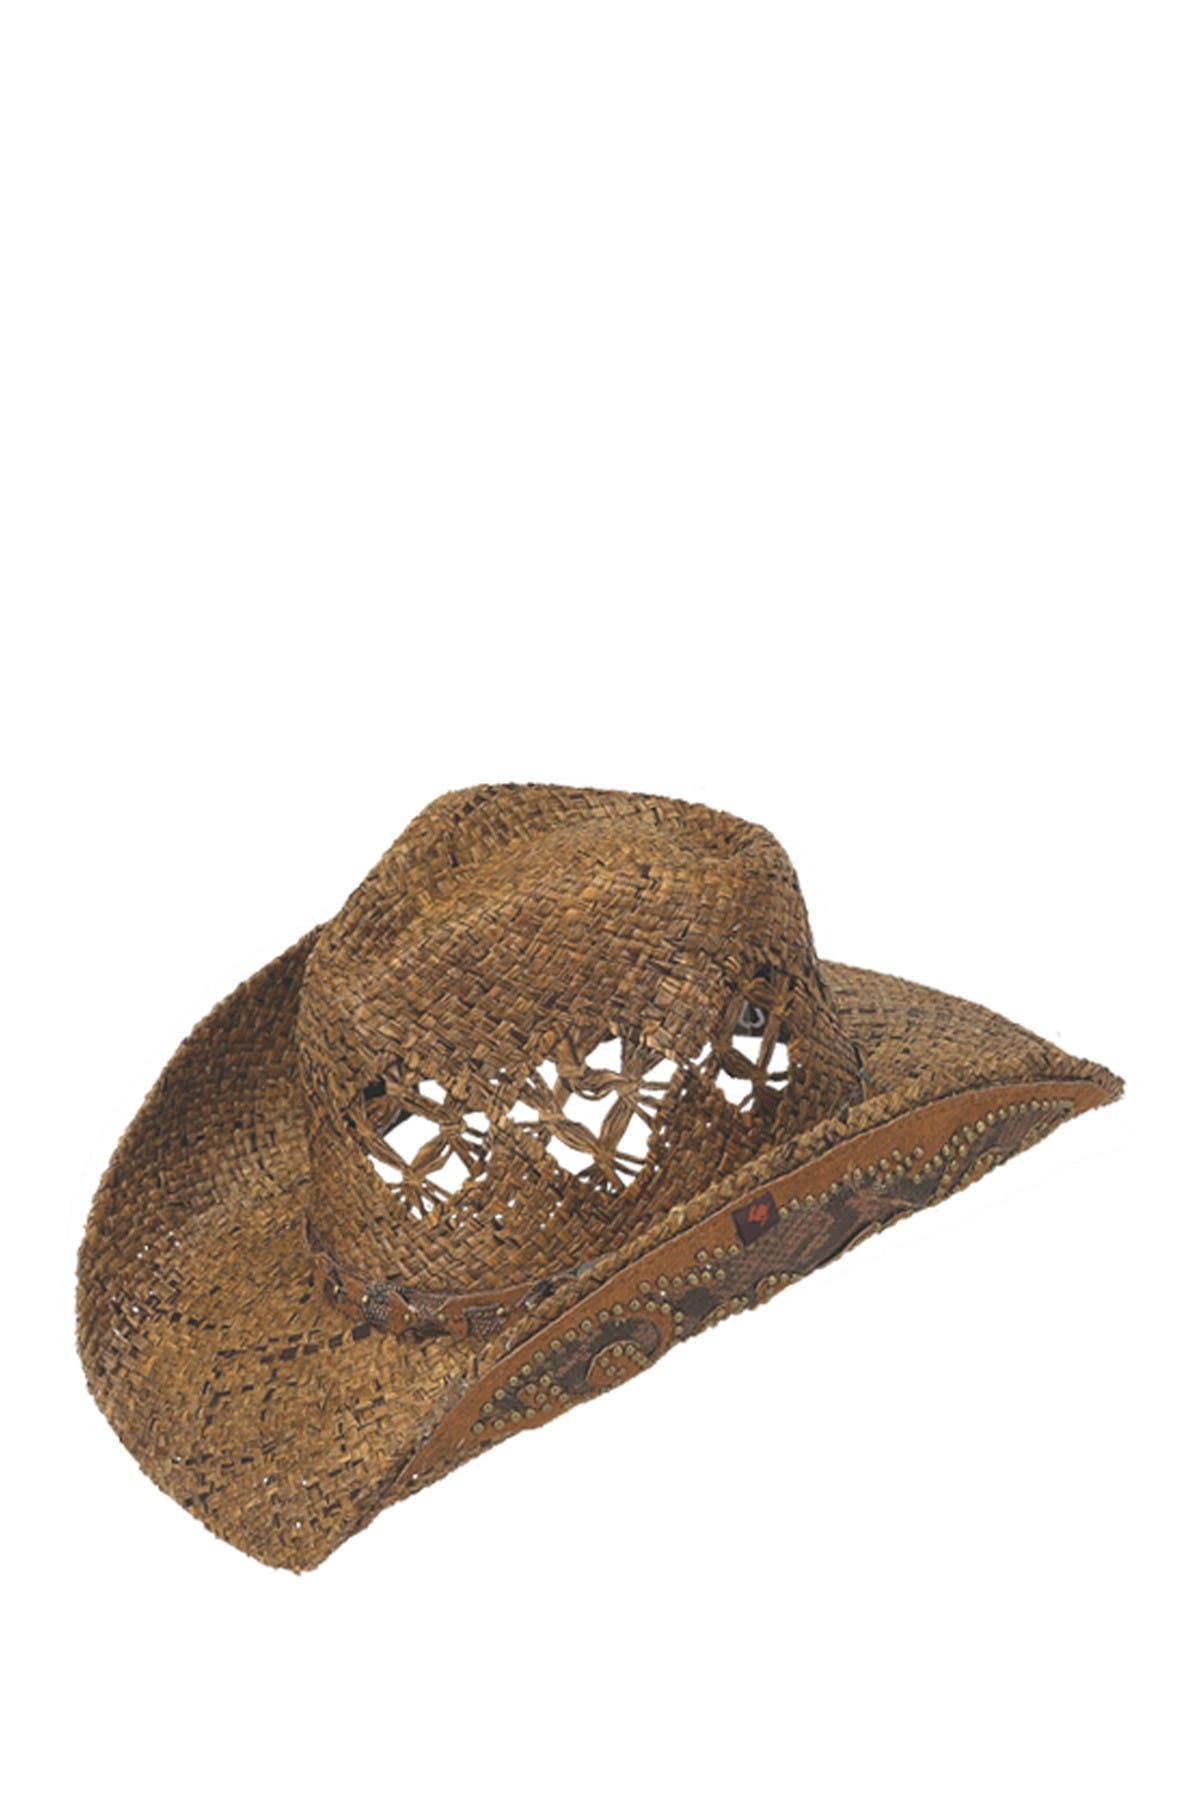 Image of Peter Grimm Headwear Jarales Studded Cowboy Hat